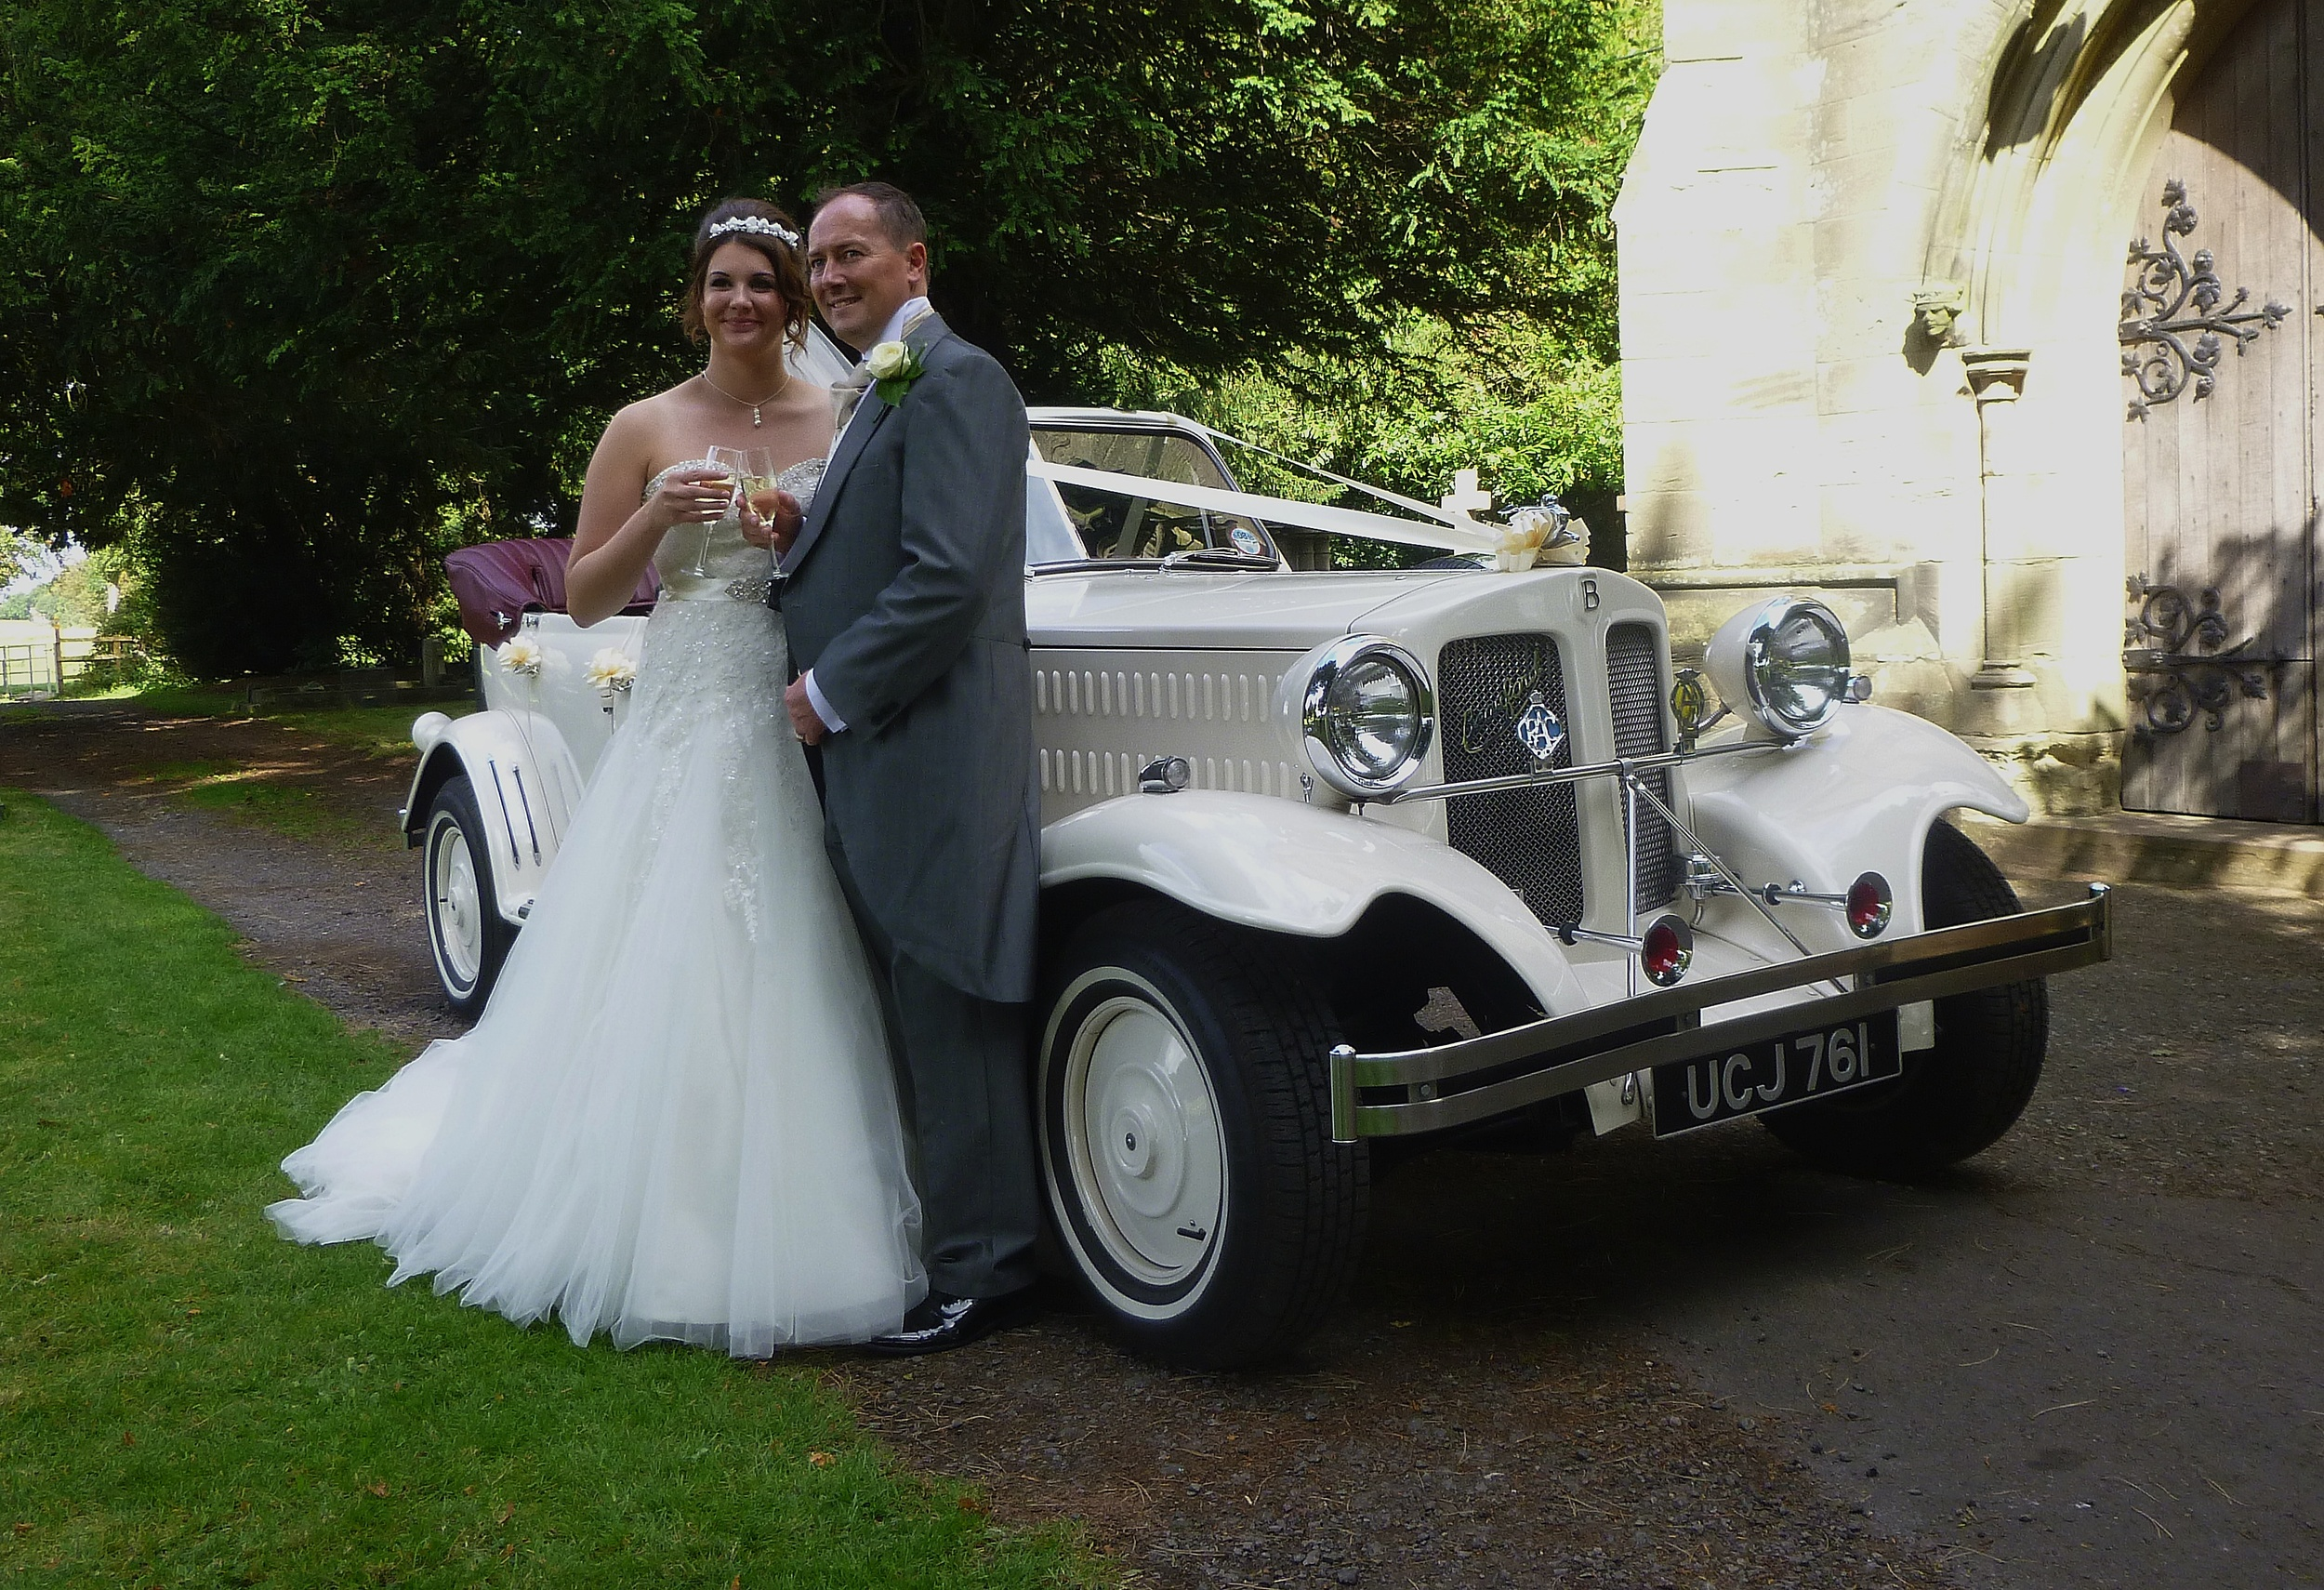 Danielle and Edward enjoying a toast following their wedding at St Jame's Church, Ansty, Coventry, Warwickshire.